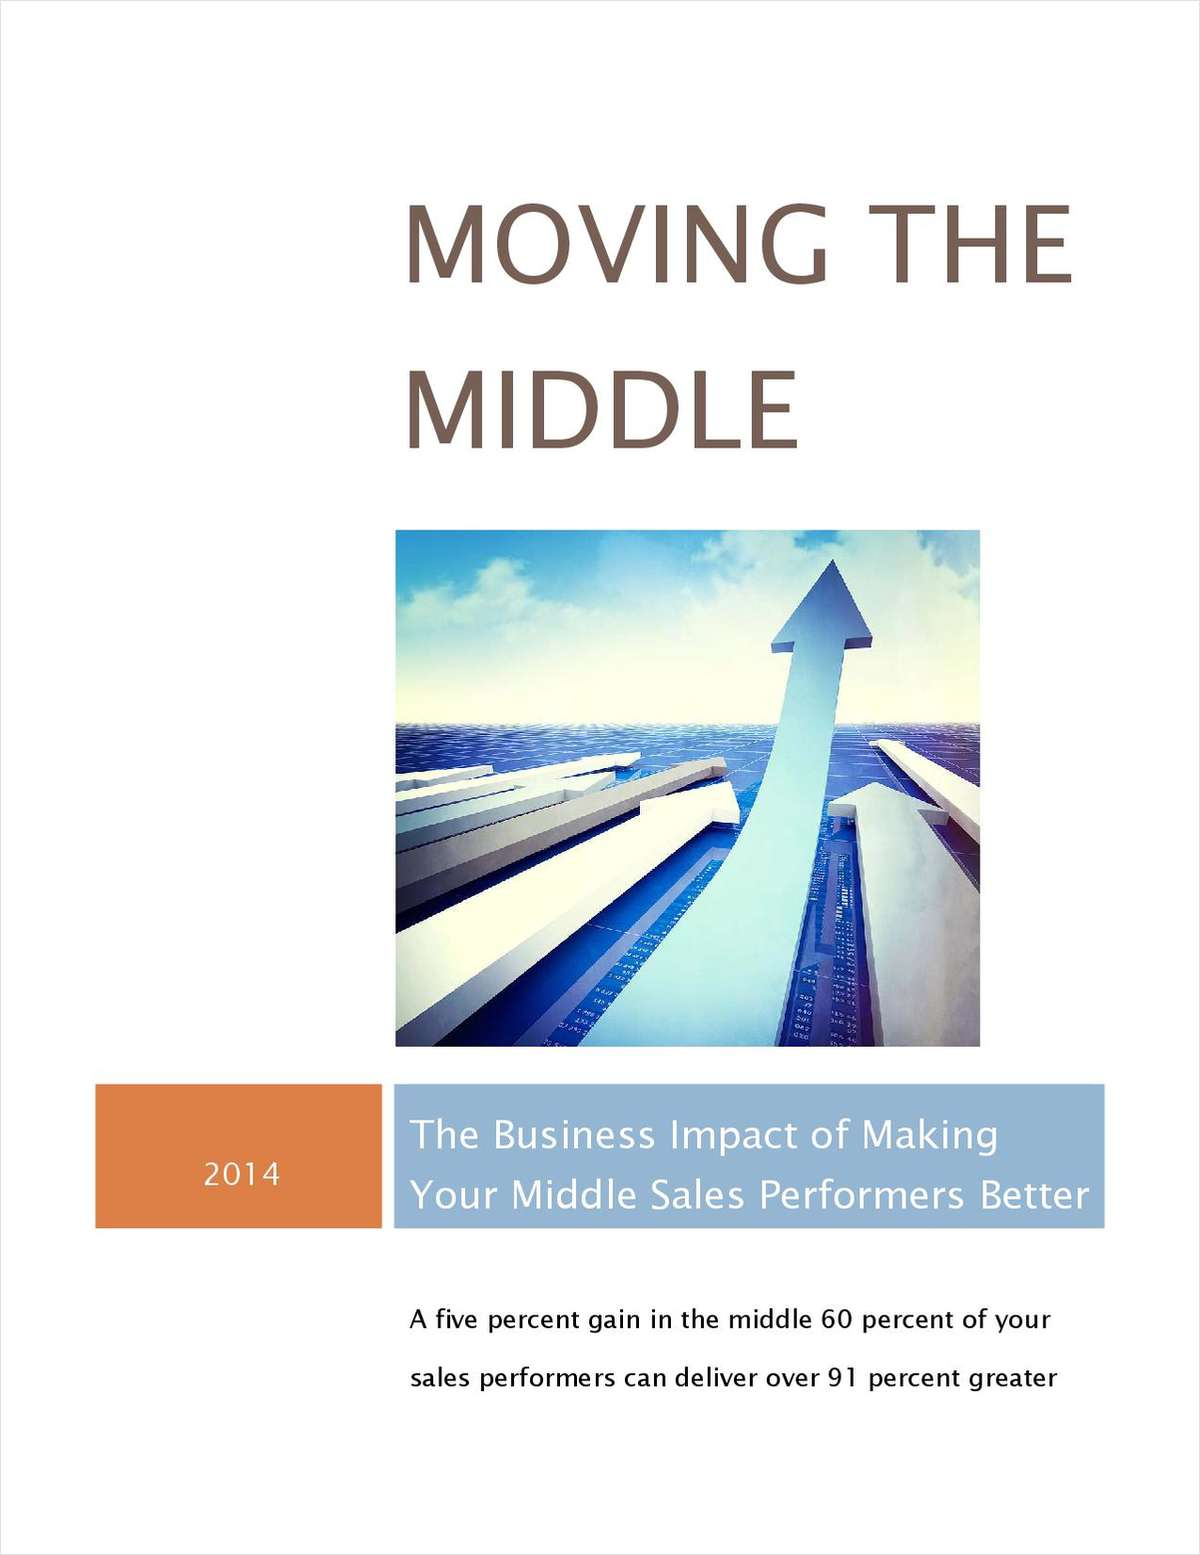 Moving the Middle: The Business Impact of Making Your Middle Sales Performers Better